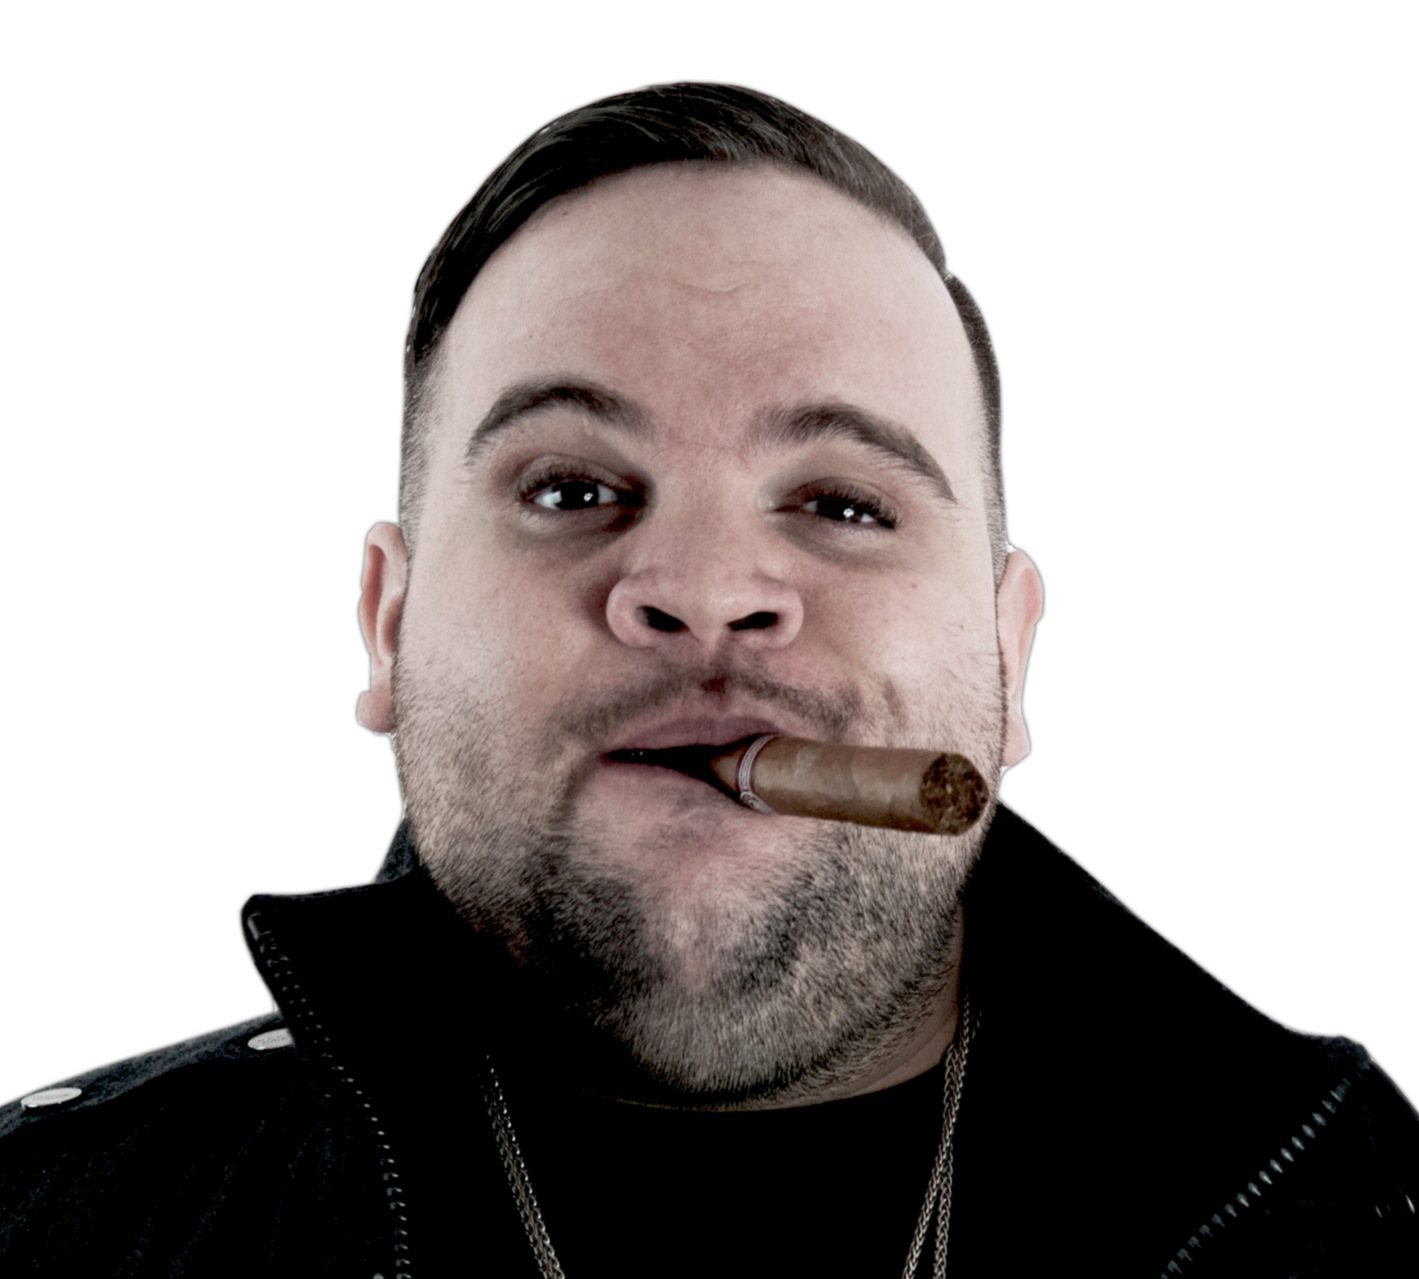 File:Briggs (rapper) promo shot.jpg - Wikimedia Commons